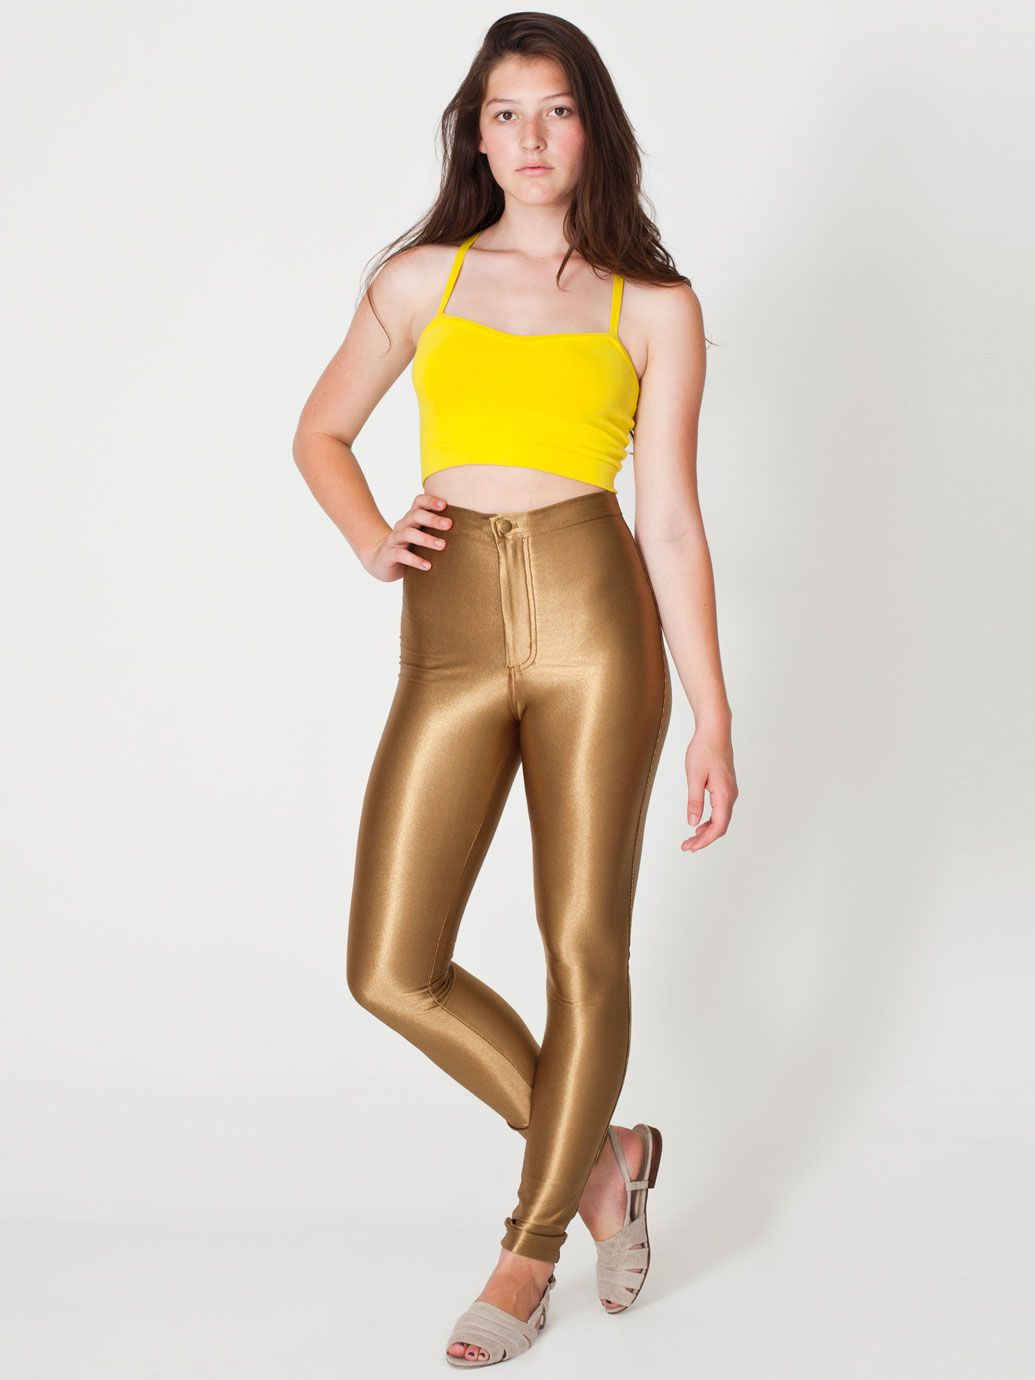 The Disco Pant | Form-Fitting | Women's Pants | American Apparel